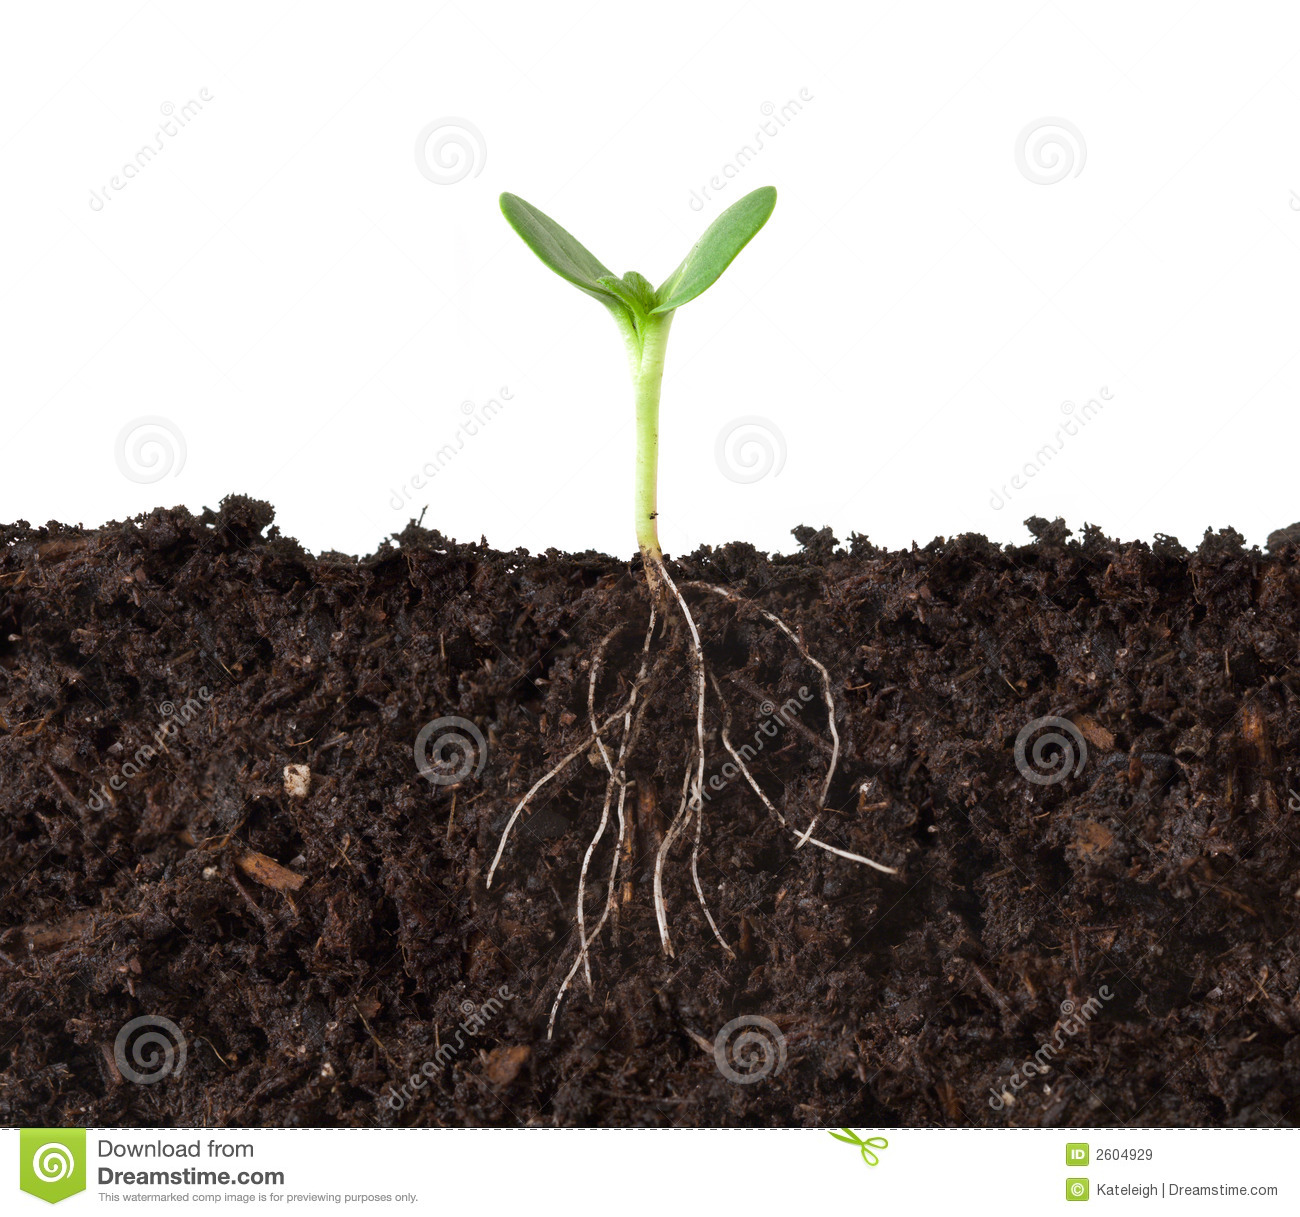 Growing Plant with Roots Clip Art